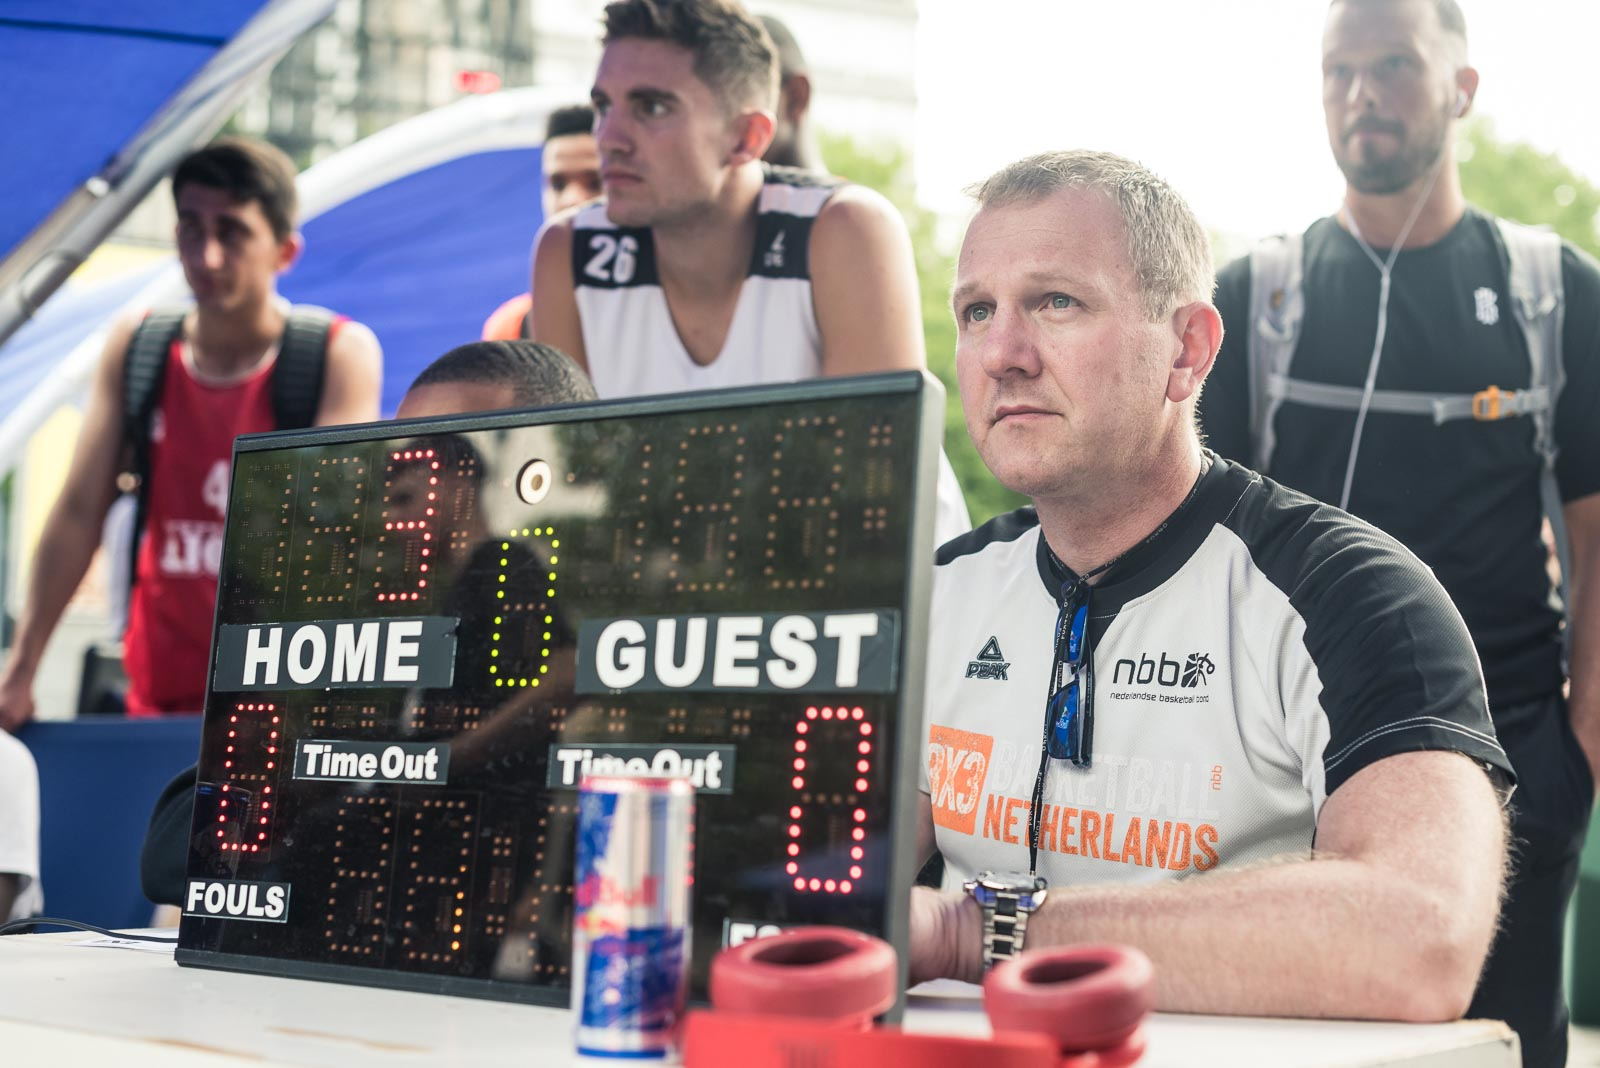 Referee during Red Bull Reign in Rotterdam